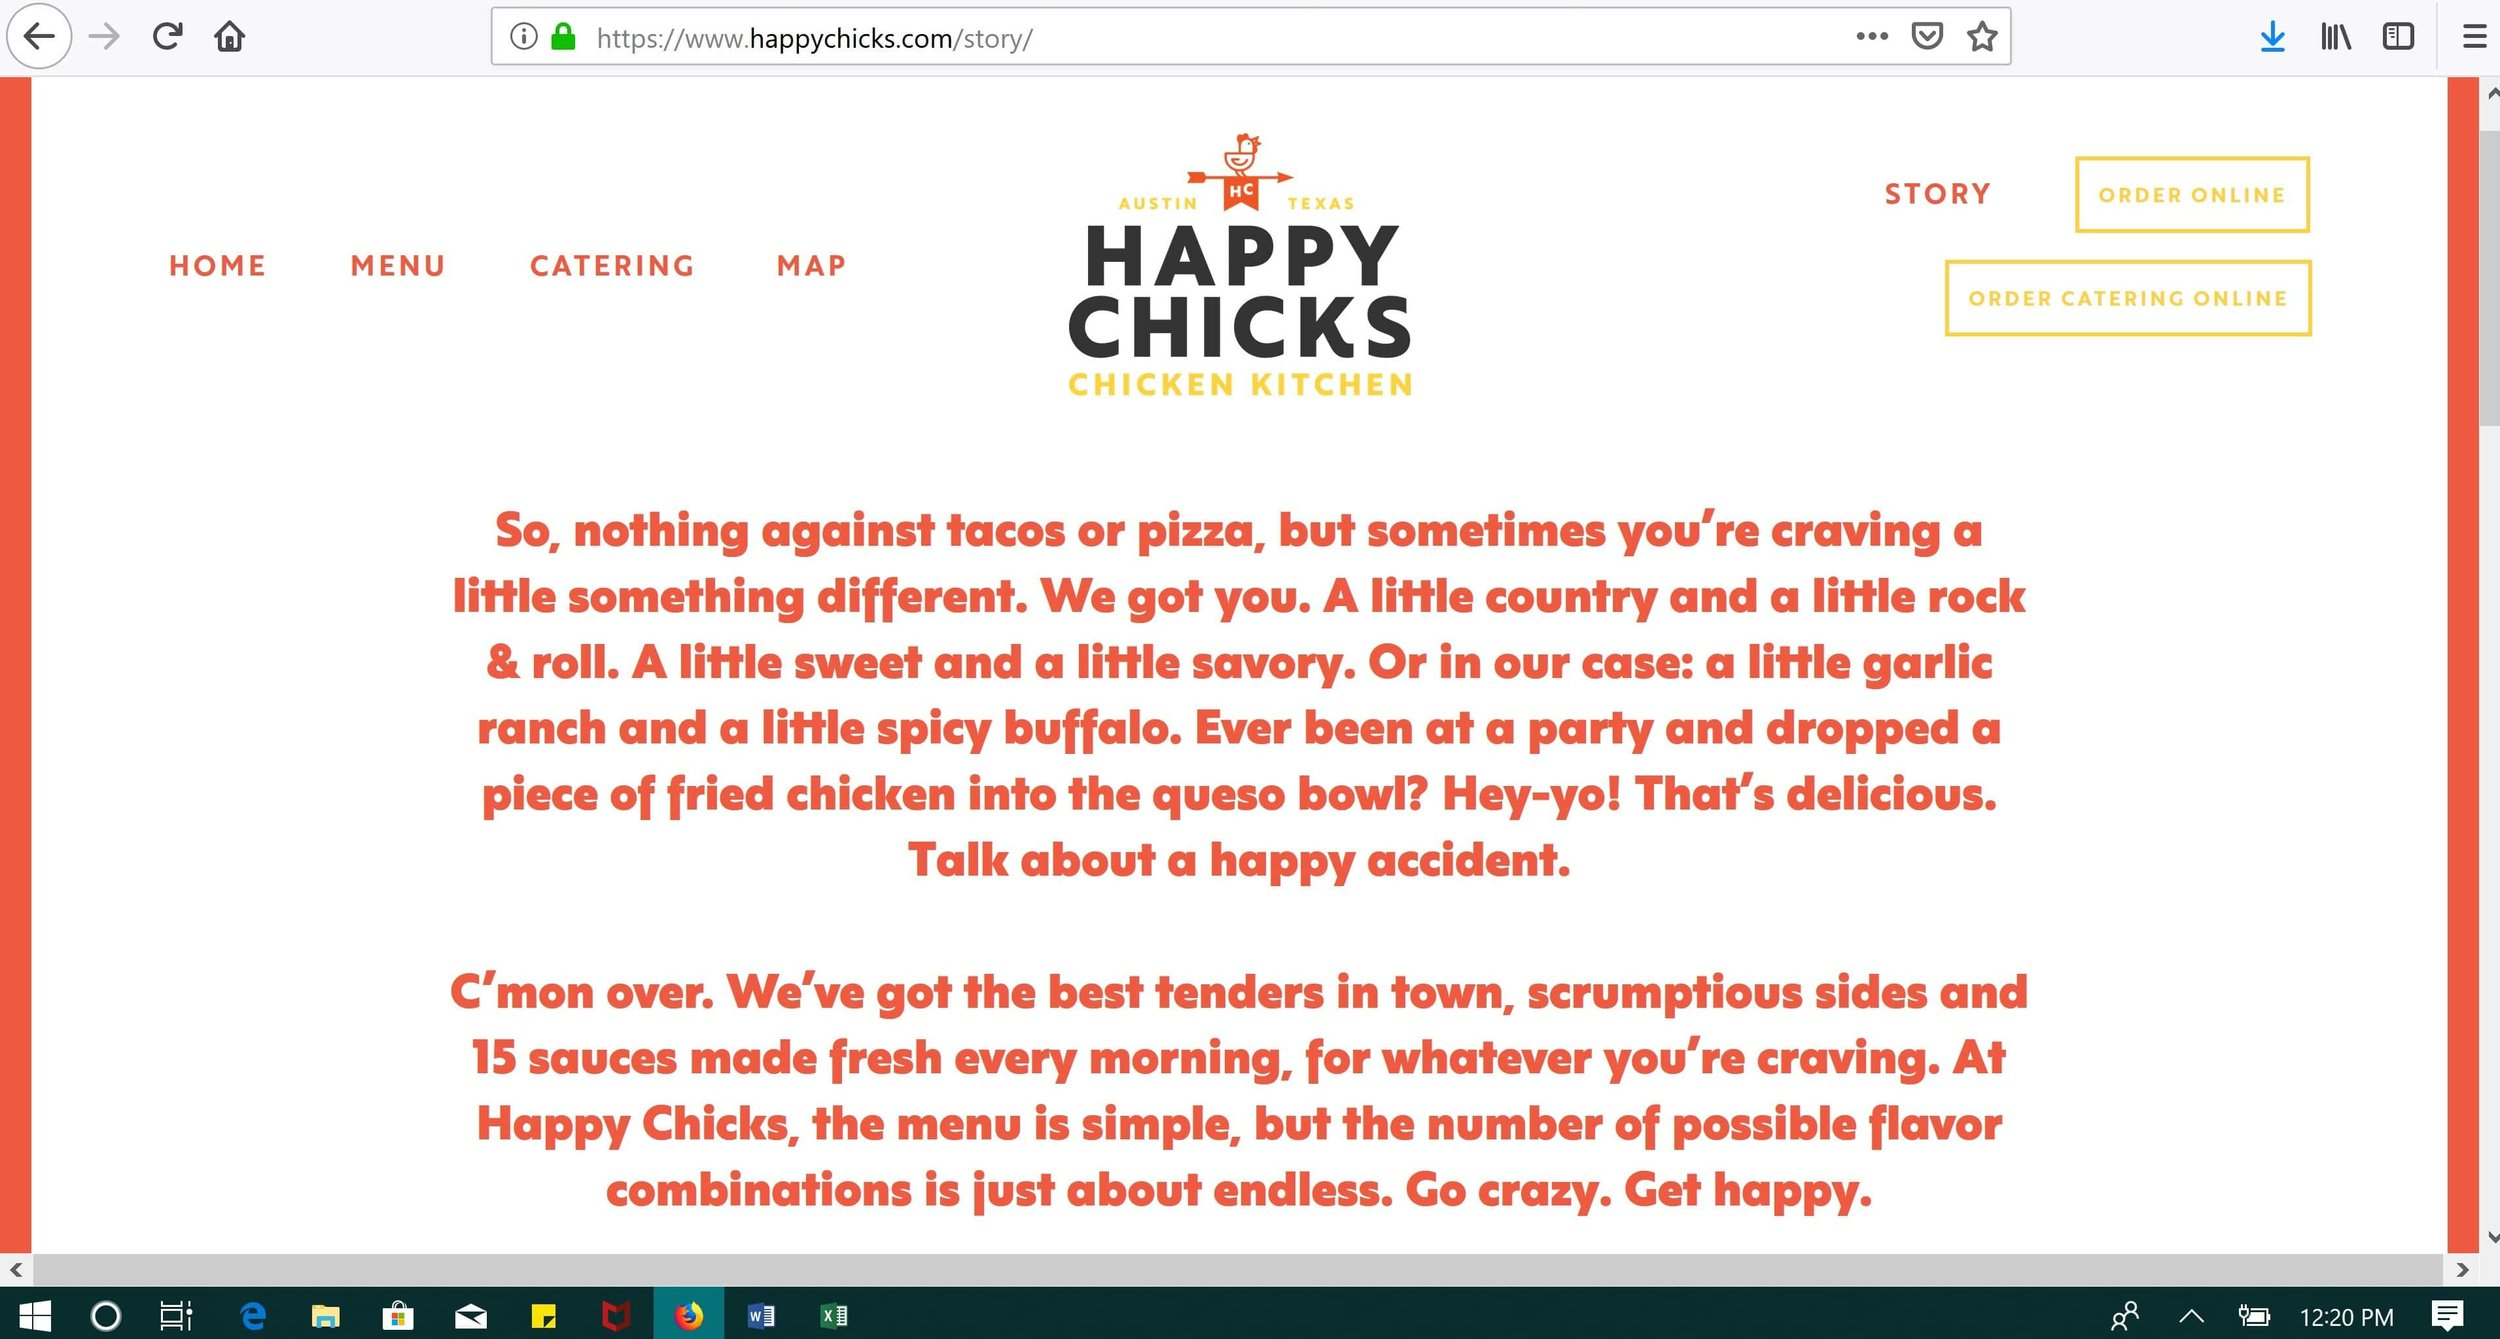 Restaurant Copywriting and Brand Story